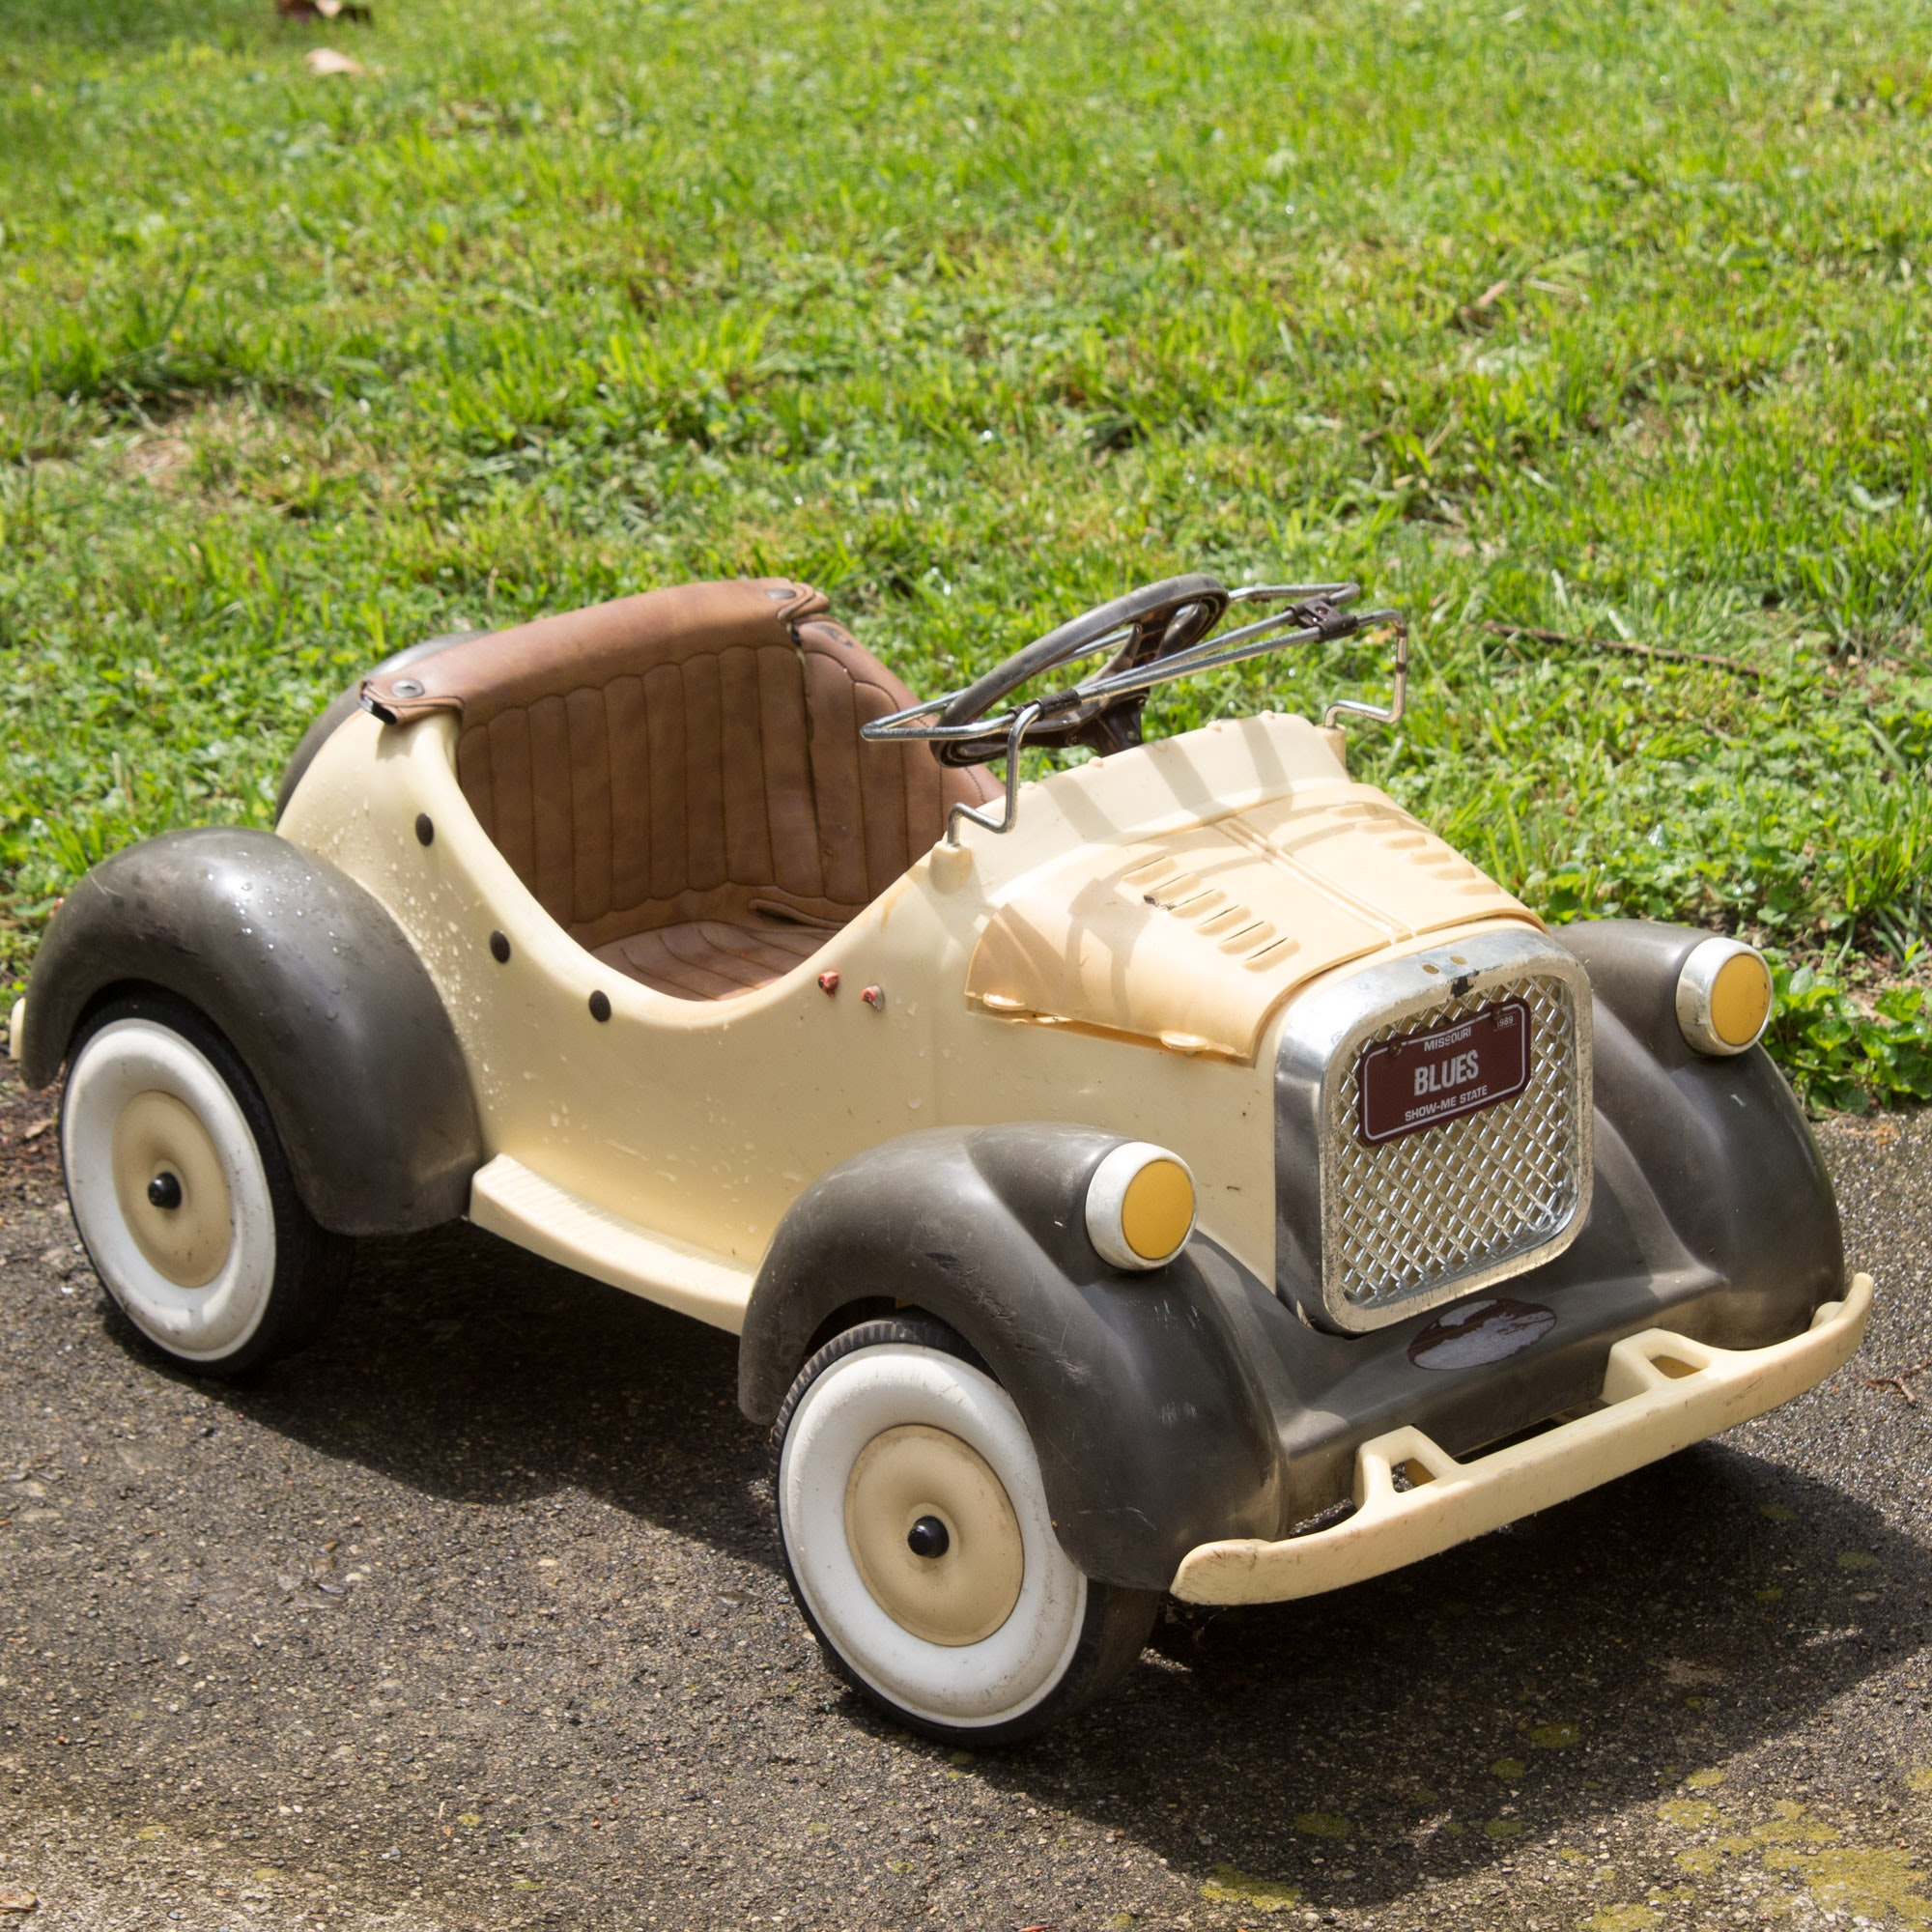 Vintage Battery Operated Ride On Car